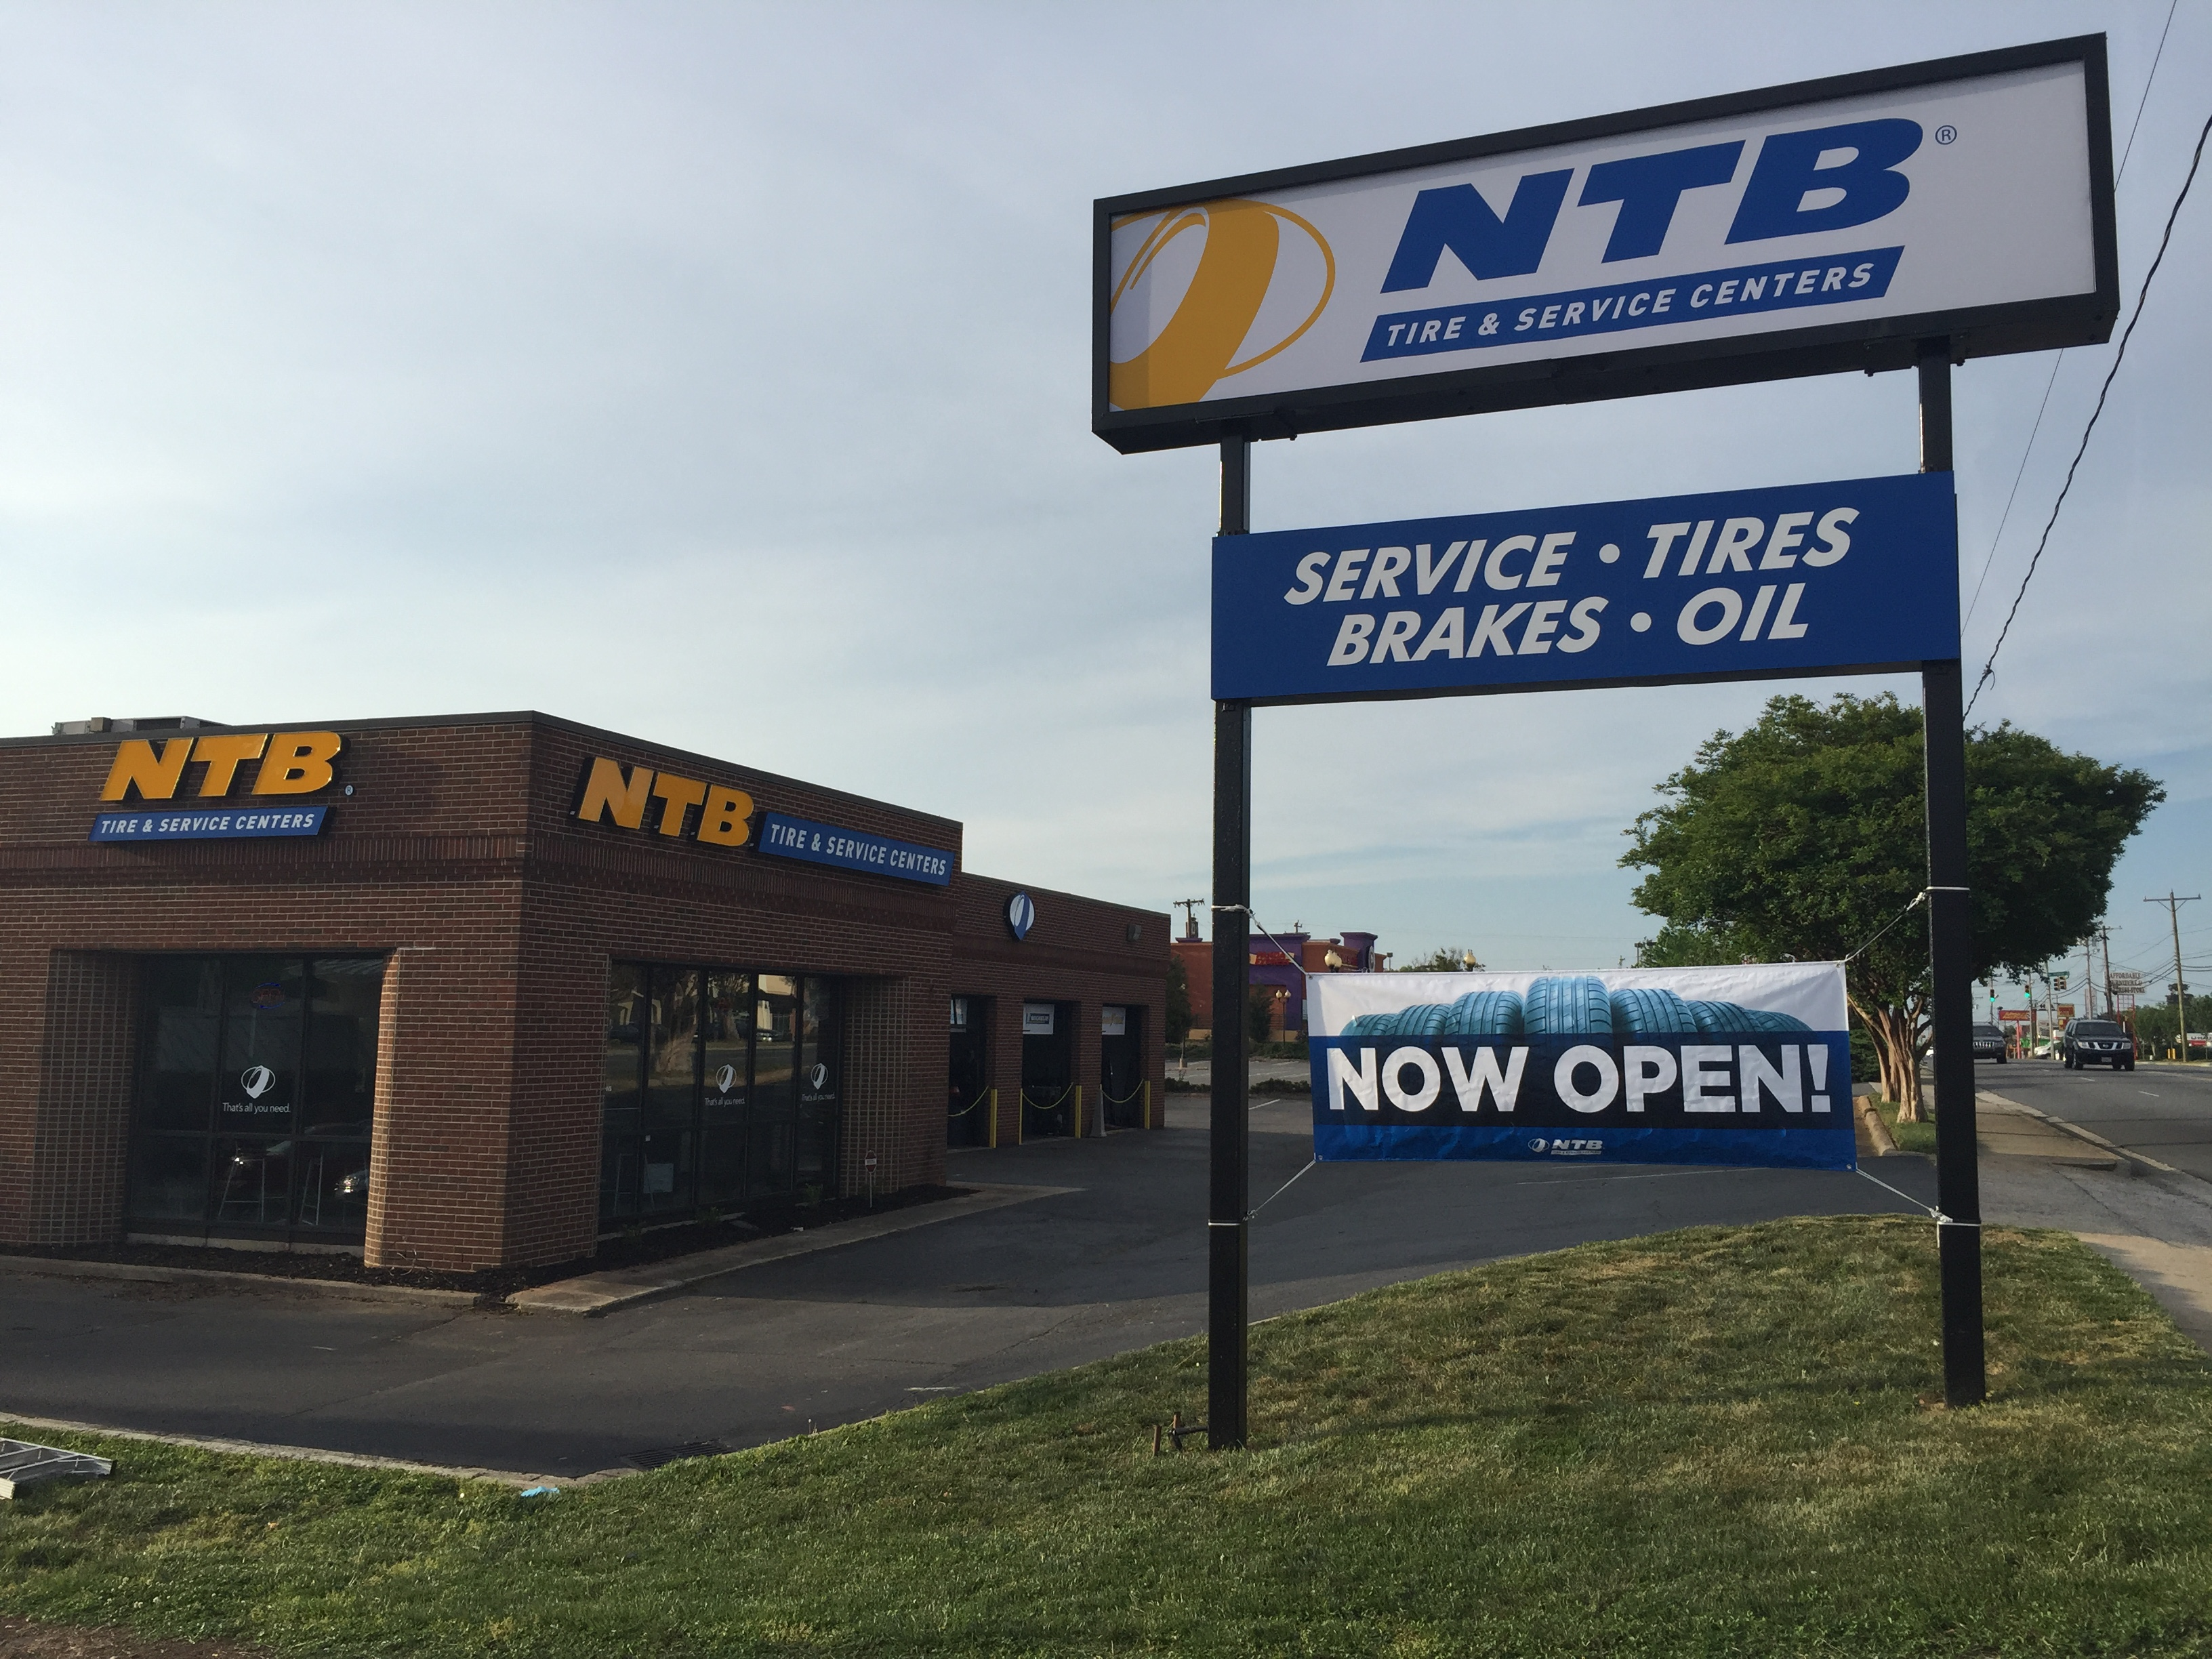 50 NTB Locations in North Carolina, and Counting